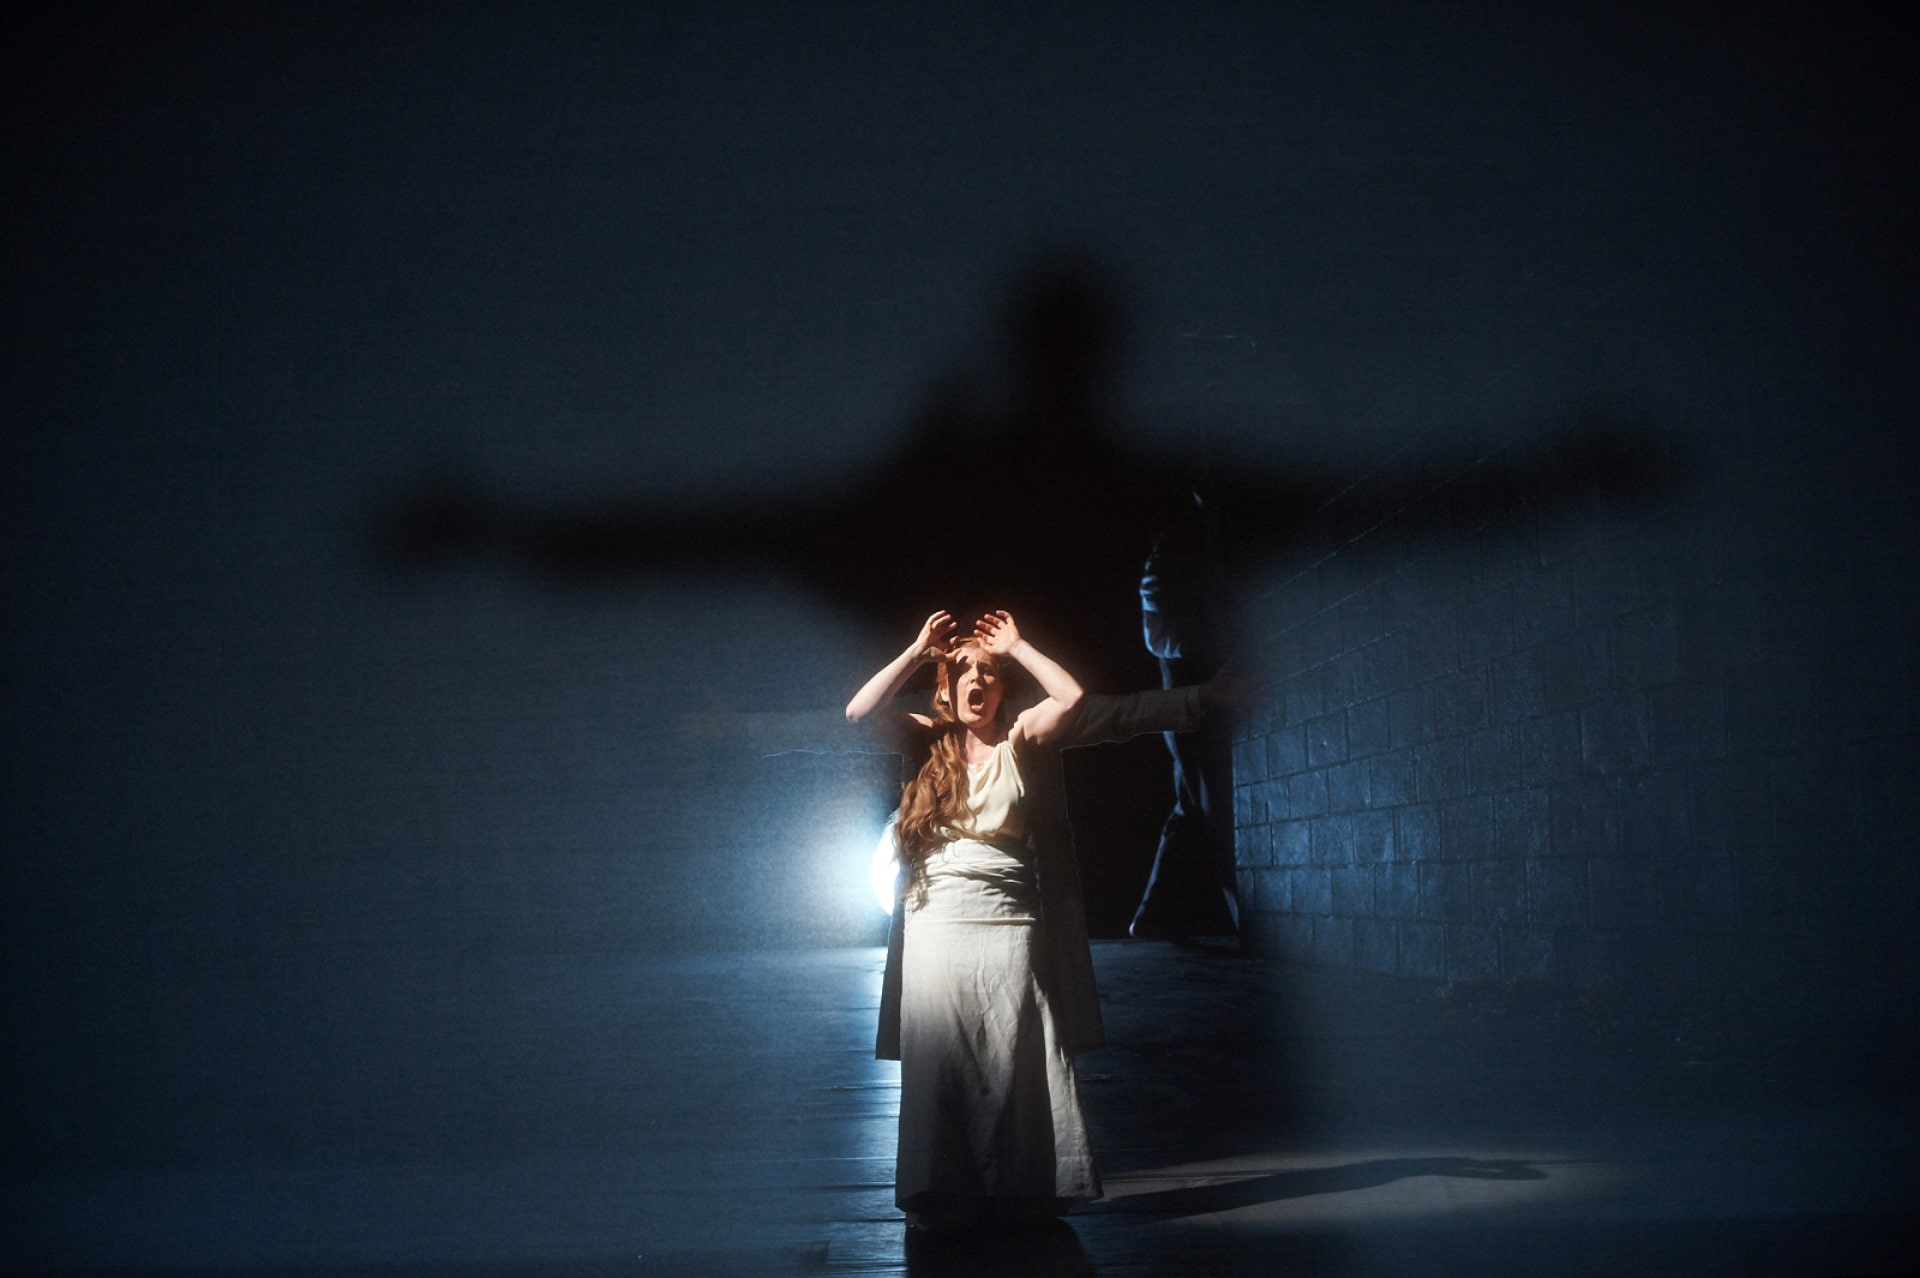 Woman in white dress kneels backlit with giant, arms-outstretched shadow behind.